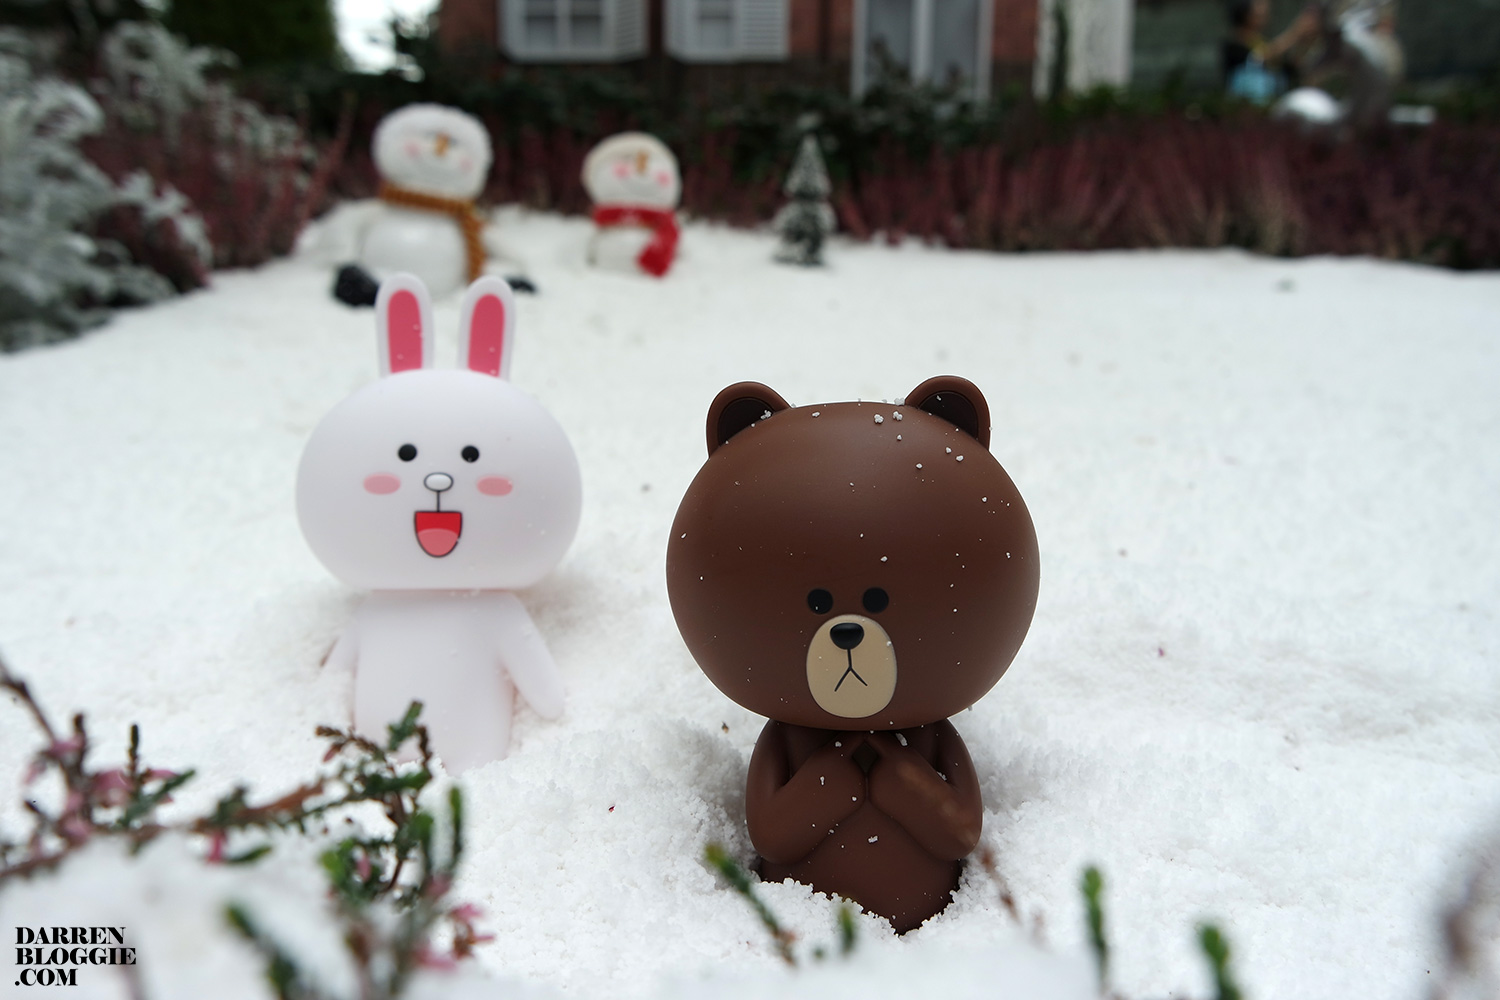 Brown and Cony at Gardens by the Bay